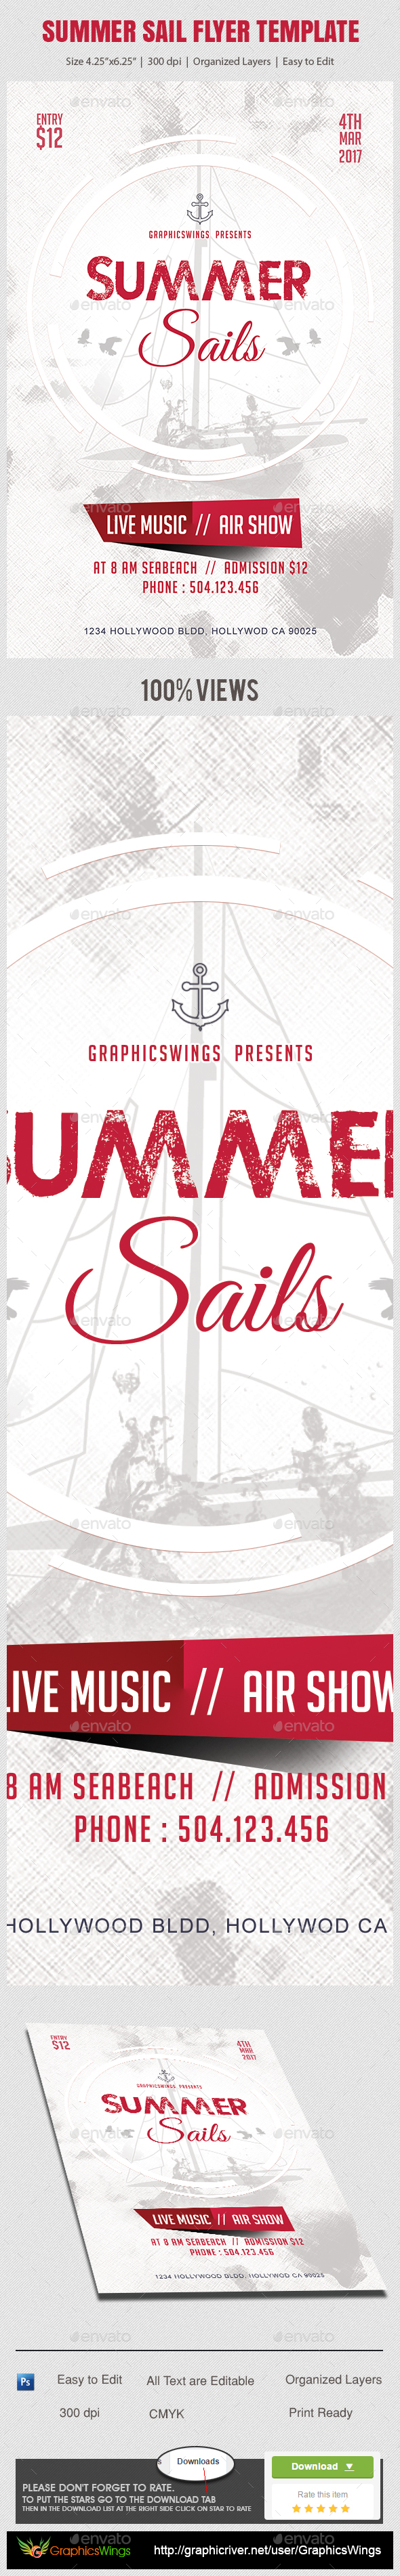 Summer Sail Flyer Template